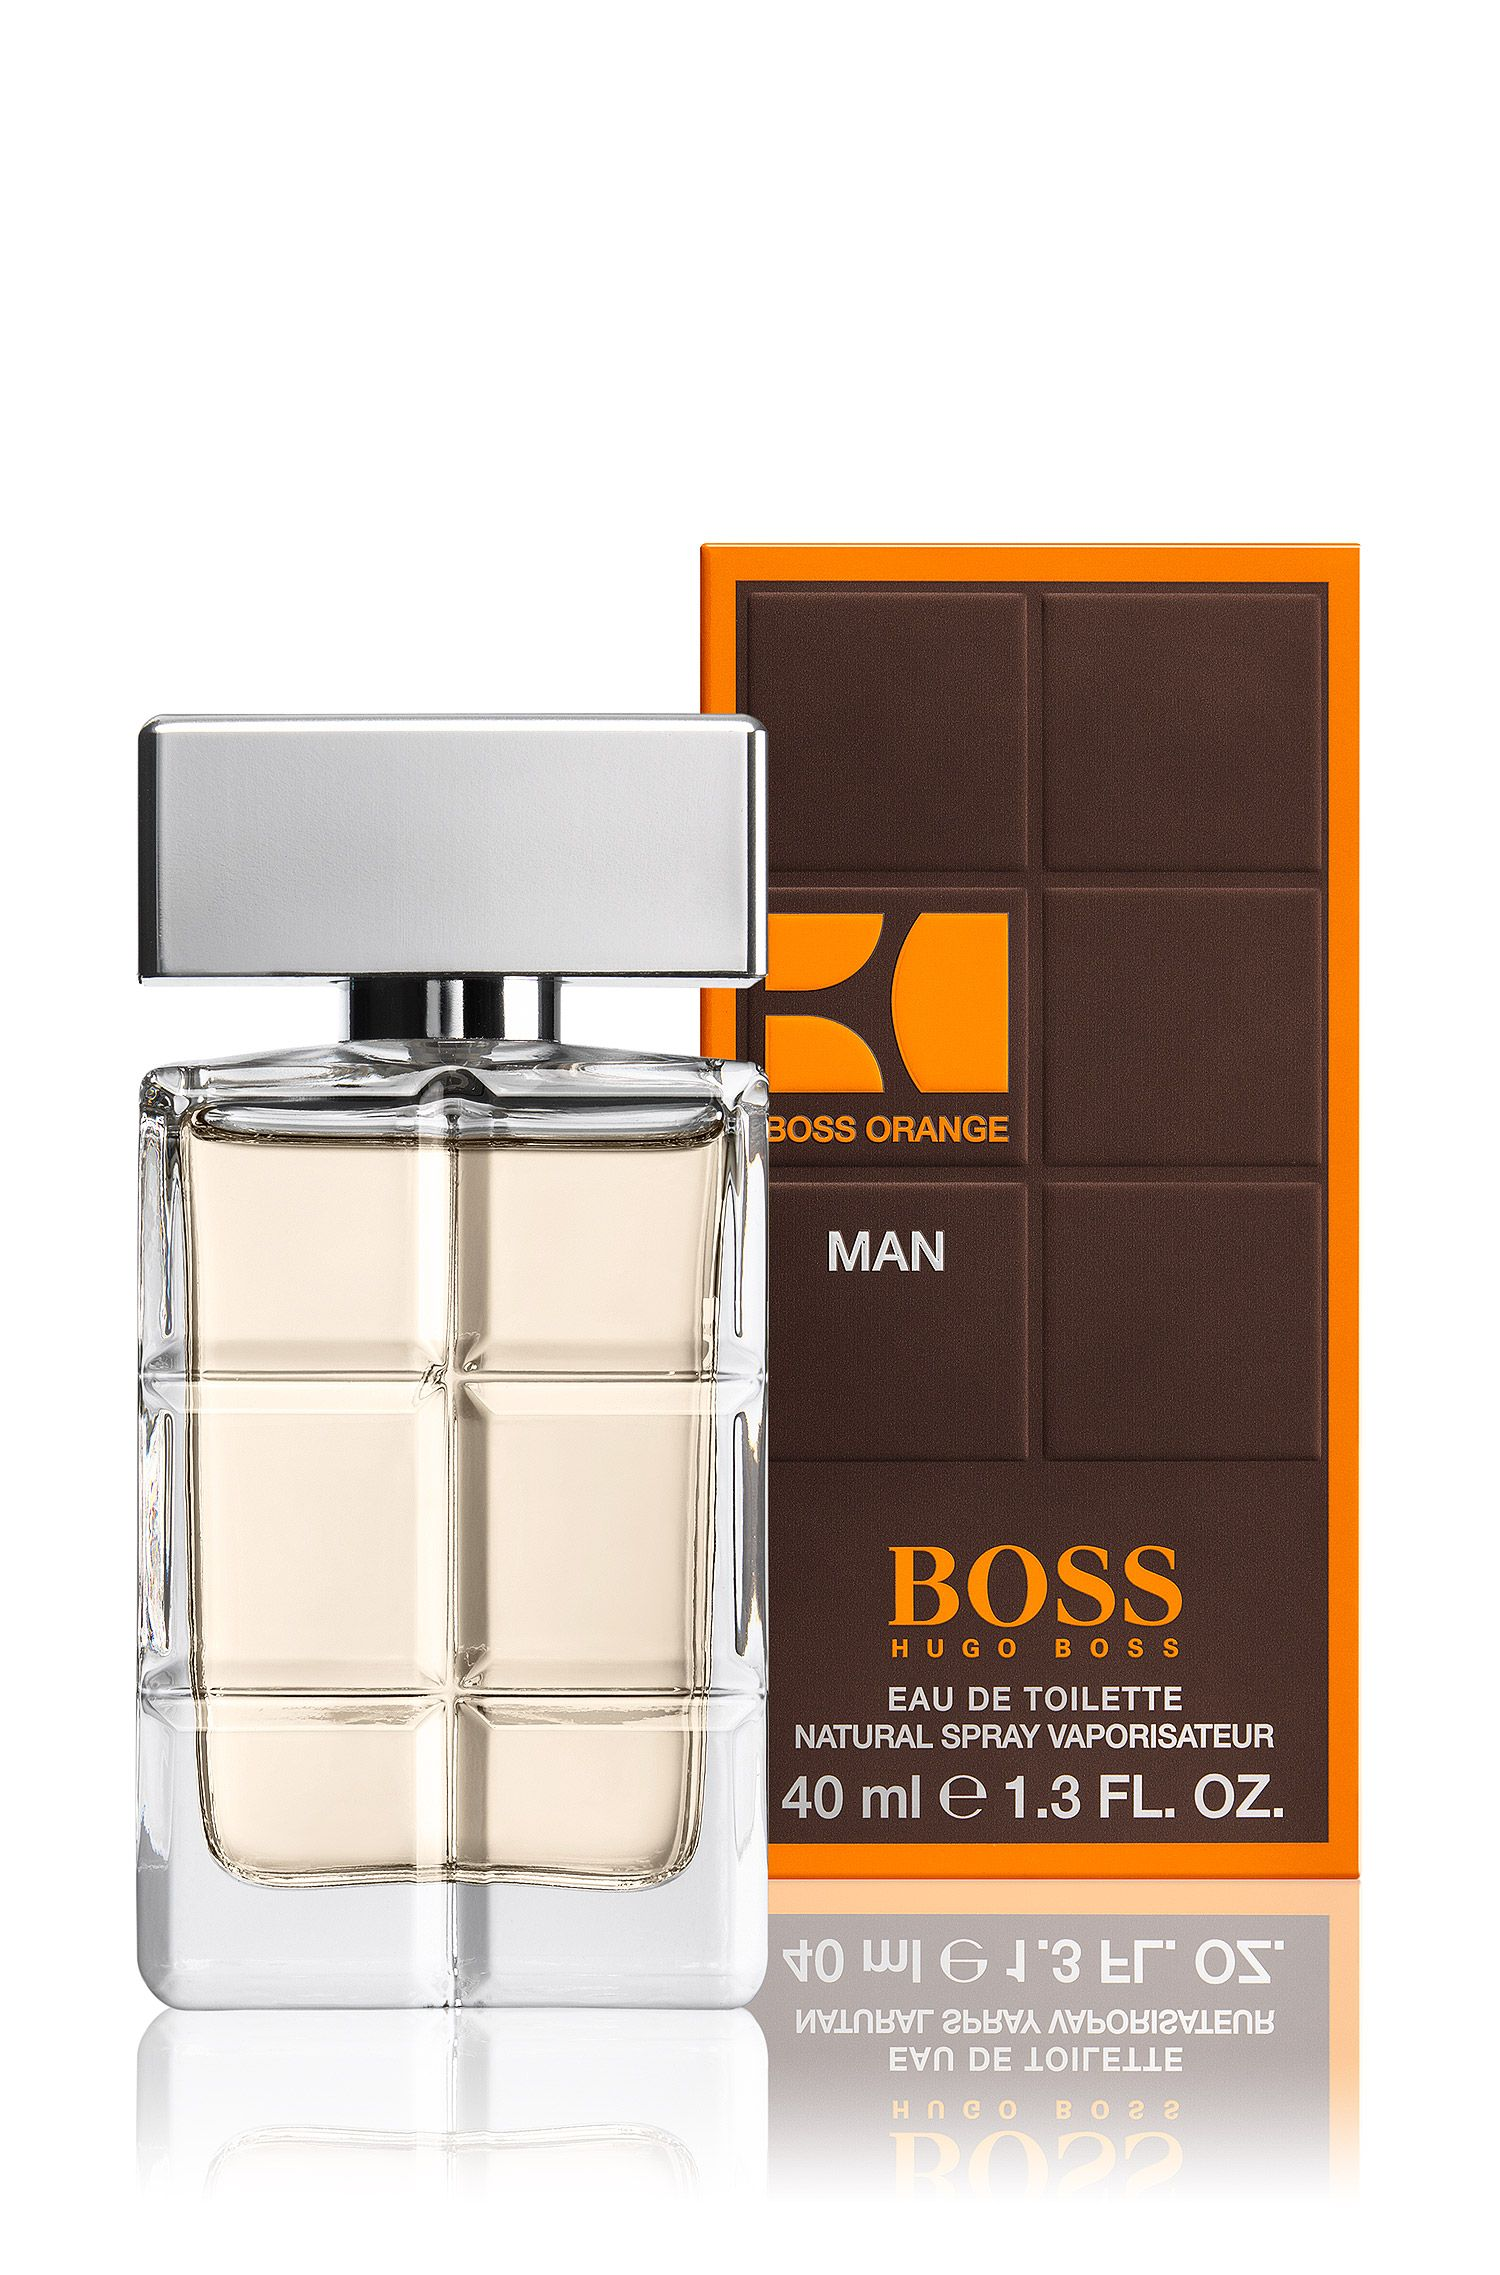 Eau de toilette BOSS Orange Man de 40 ml